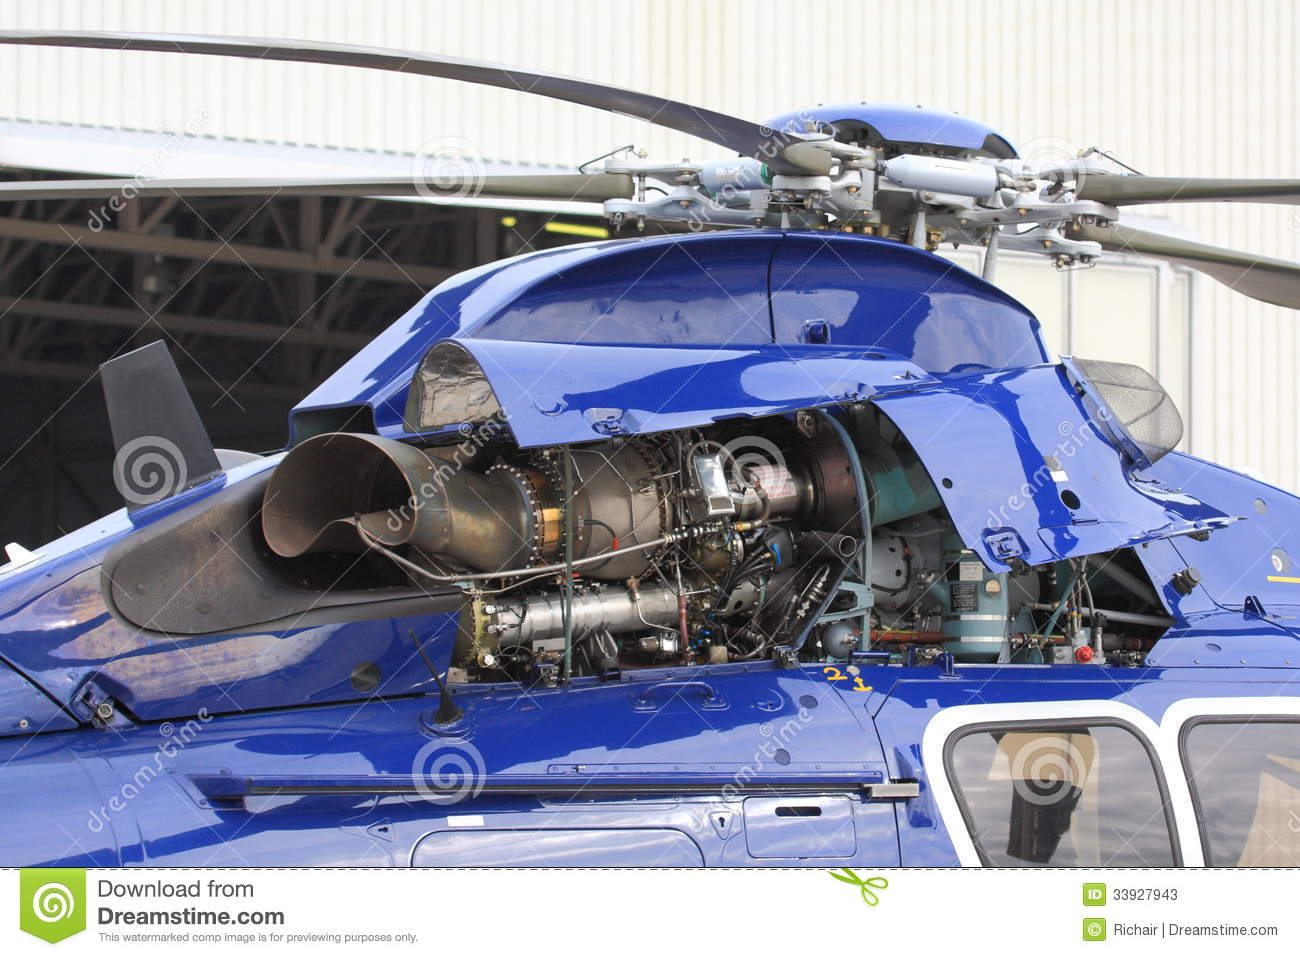 rc helicopter engines with Stock Photos Helicopter Turbine Engine Gas Cowling Opened Image33927943 on Watch also Stock Photos Helicopter Turbine Engine Gas Cowling Opened Image33927943 additionally 188338 Nasas Electric Vertical Takeoff Airplane Takes First Flight Aims To Eventually Replace The Helicopter together with RPP 2DCB7C2 2E4G in addition Index.